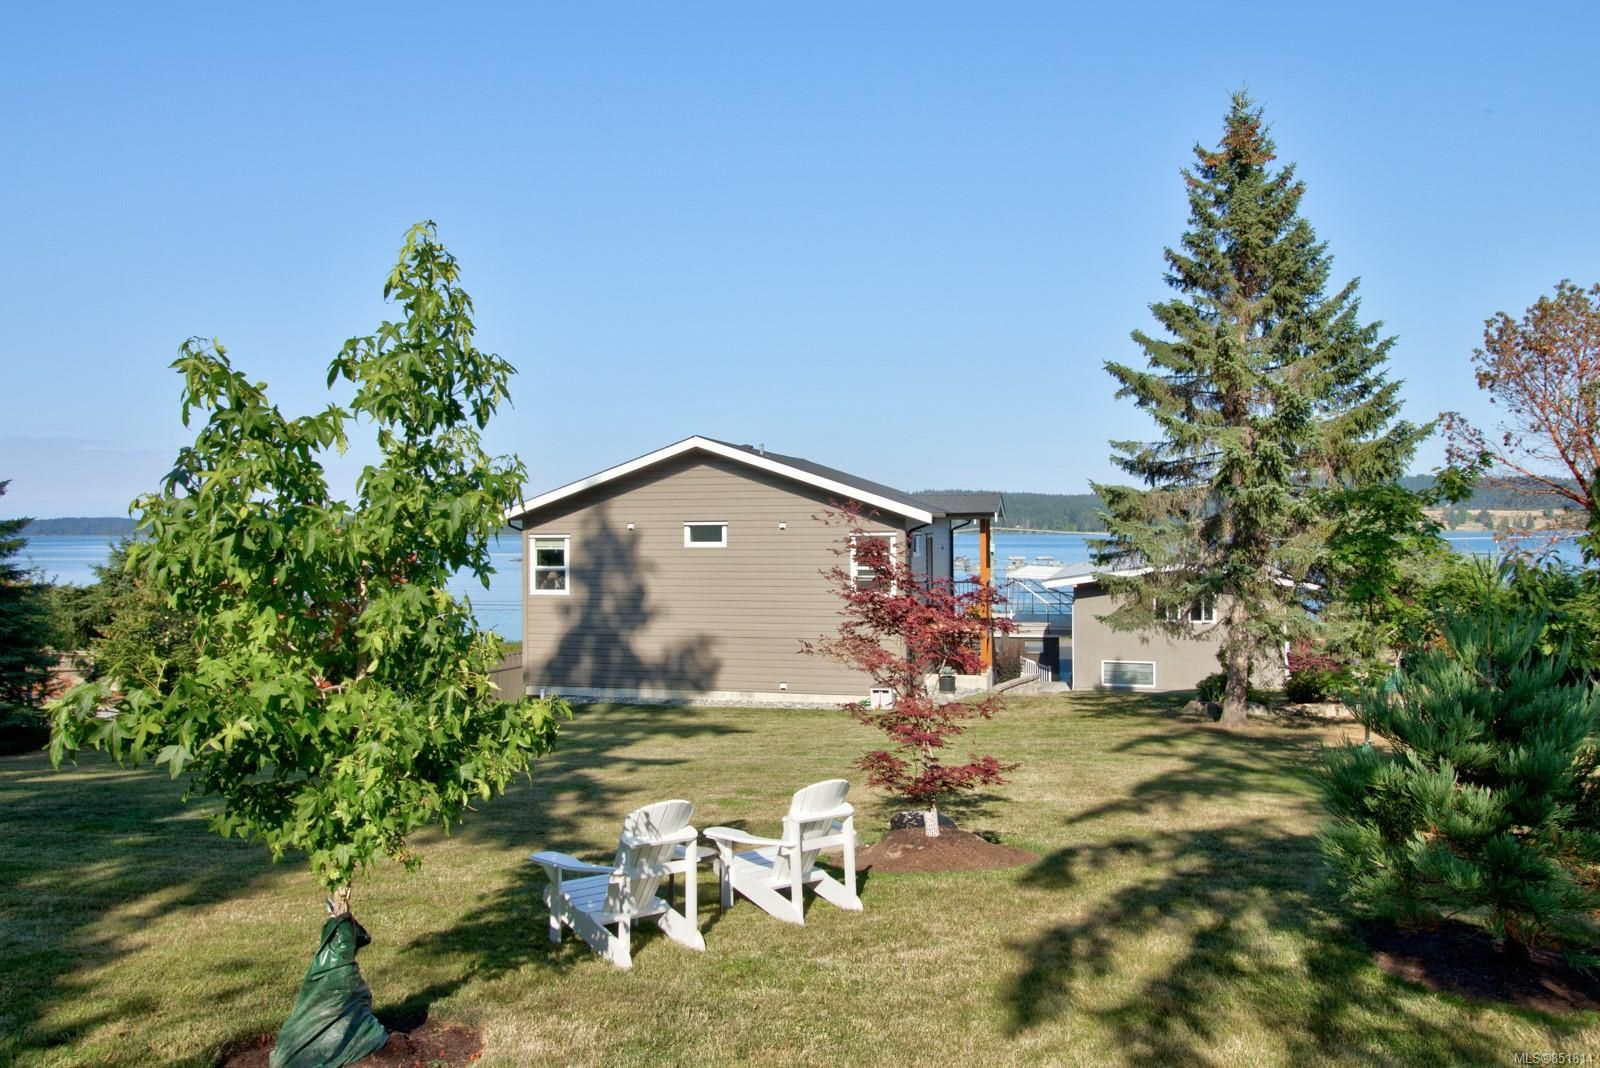 Photo 53: Photos: 191 Muschamp Rd in : CV Union Bay/Fanny Bay House for sale (Comox Valley)  : MLS®# 851814